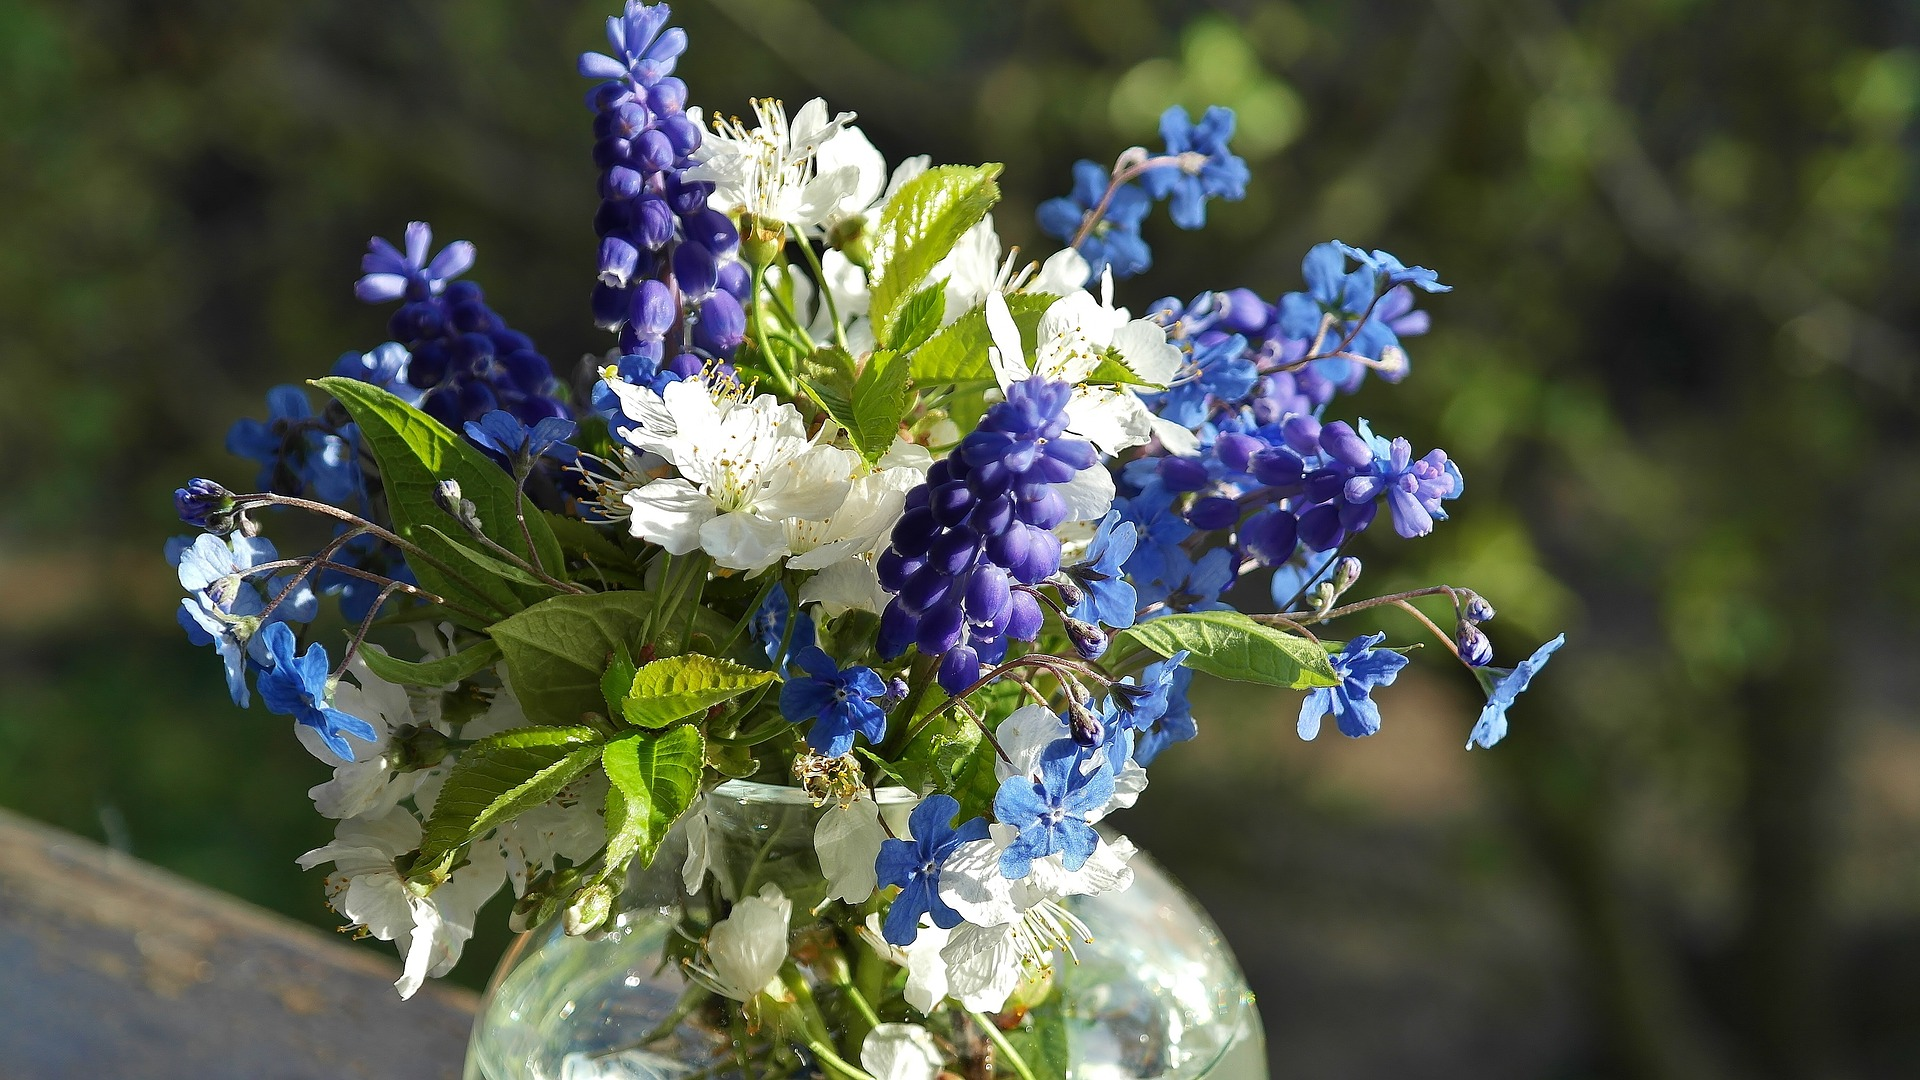 Blue & white bouquets are hot right now